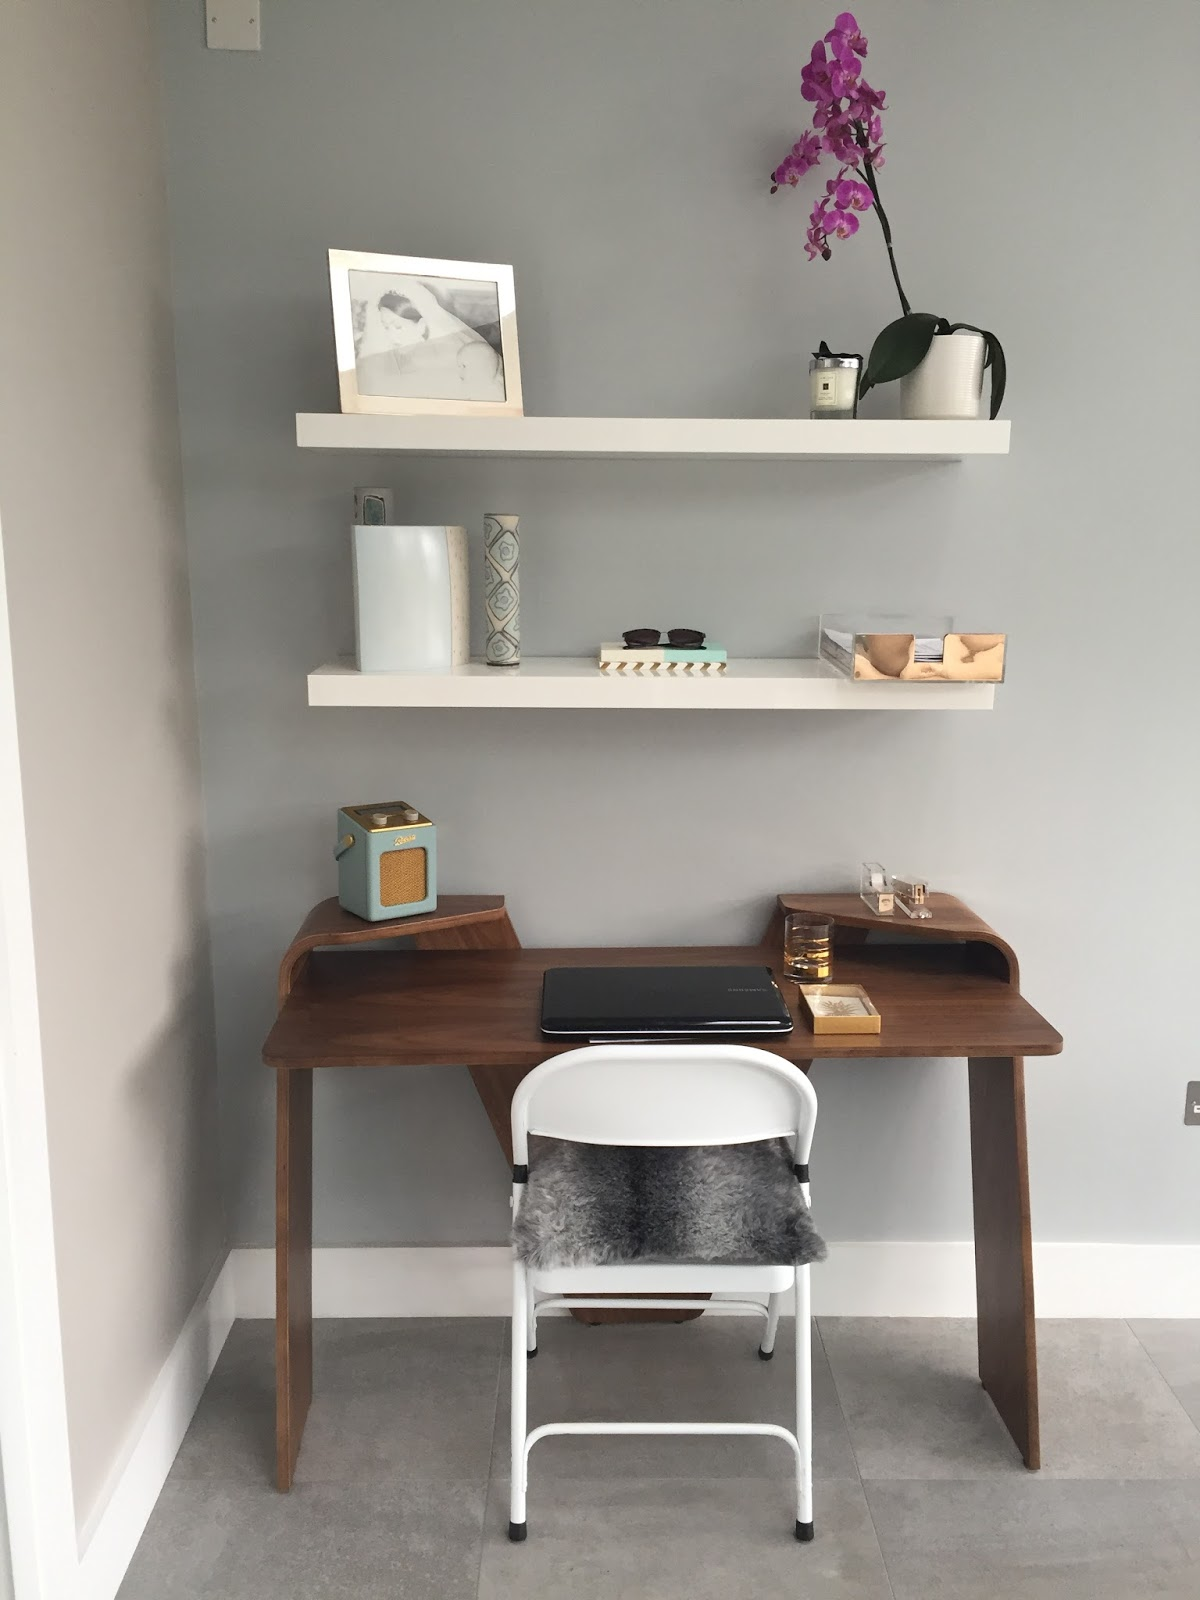 An Interiors Post – Creating a compact study area